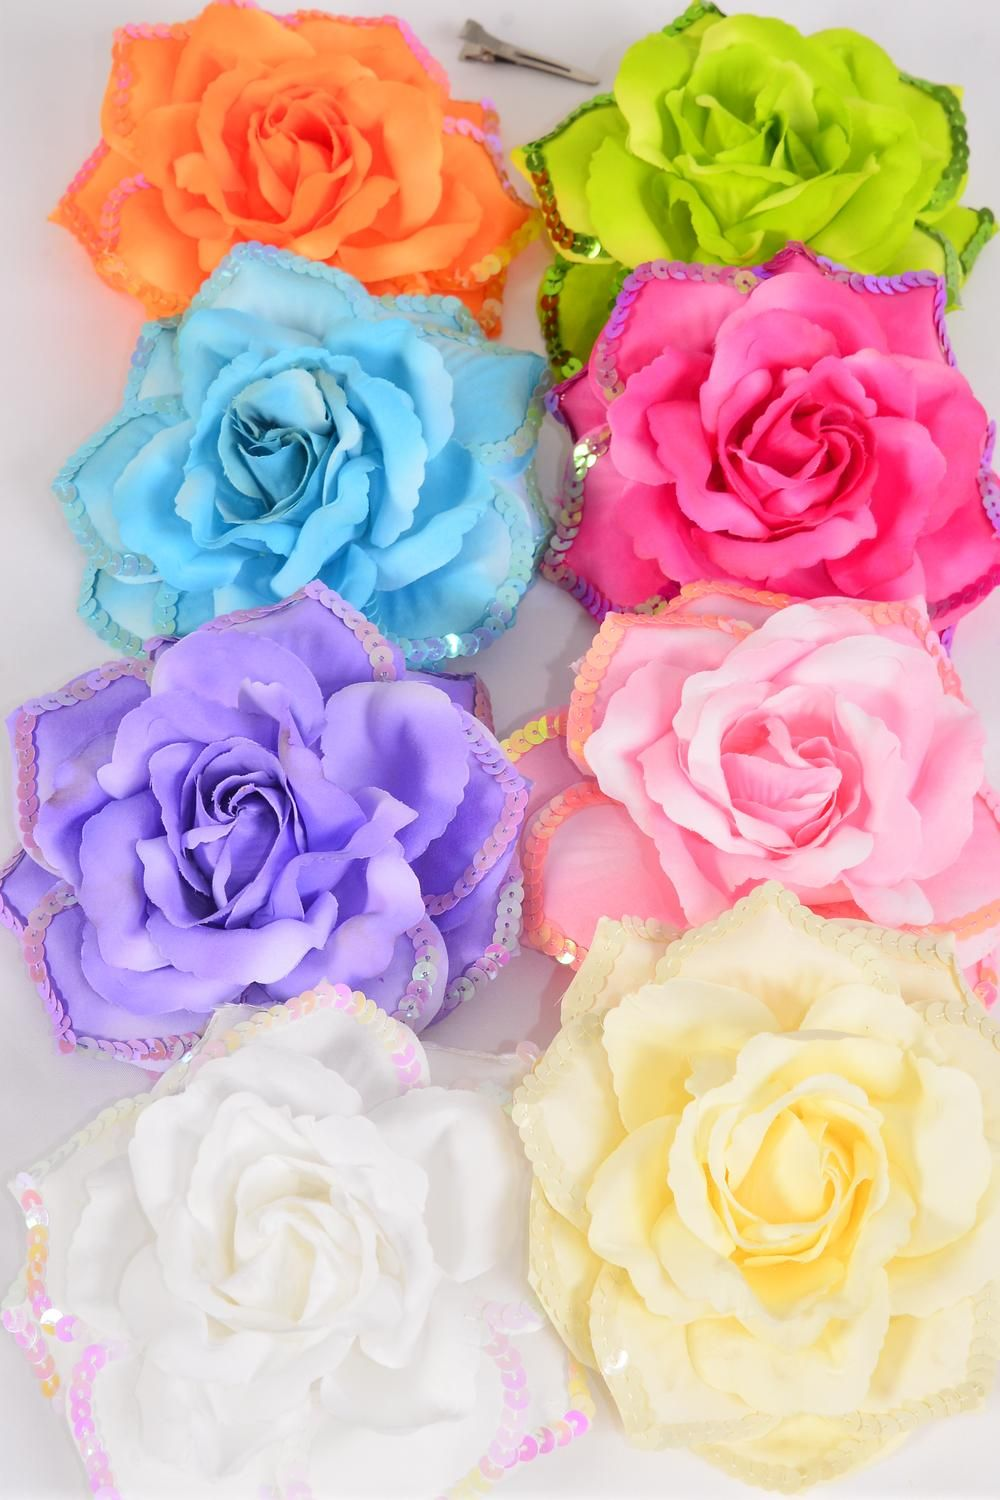 "Silk Flower Tea Rose Sequin Alligator Clip Pastel Color Mix/DZ **Pastel** Size-6"" Wide,Alligator Clip & Brooch & Elastic Pony,2 White,2 Baby Pink,2 Beige,2 Lavender,1 Blue,1 Hot Pink,1 Orange,1 Lime,8 Color Asst"